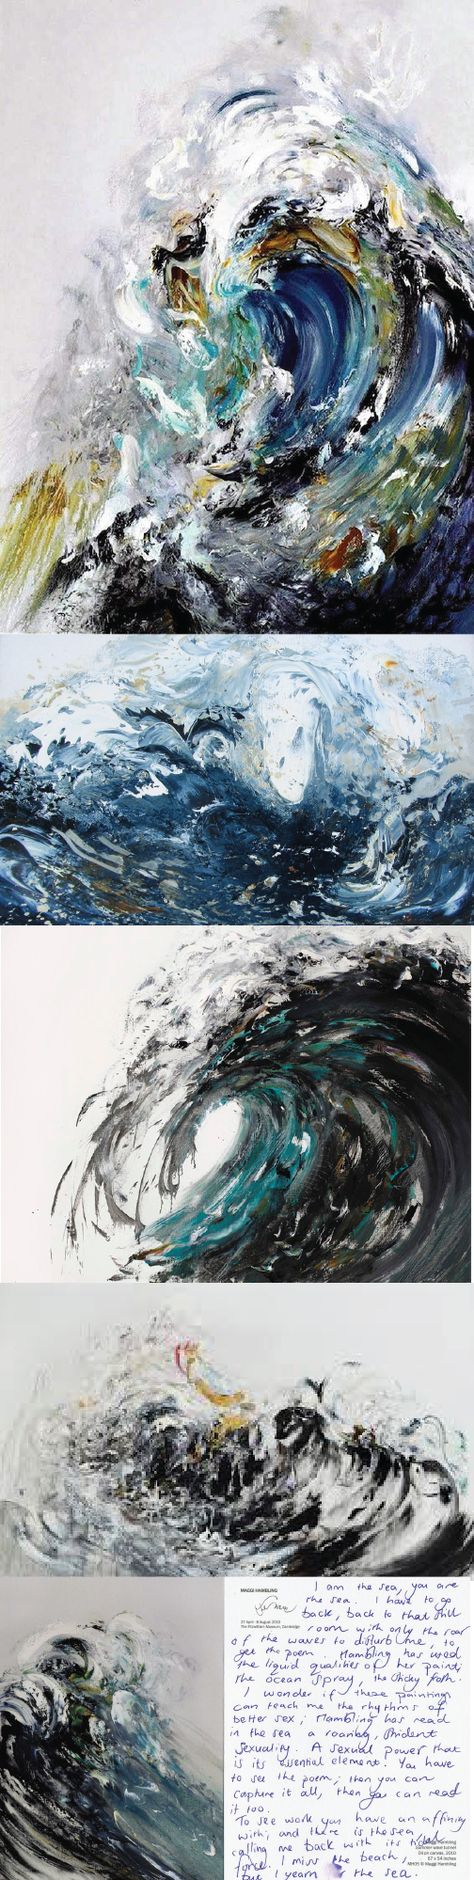 I was born beside the ocean so this really brings out colors of the waves.